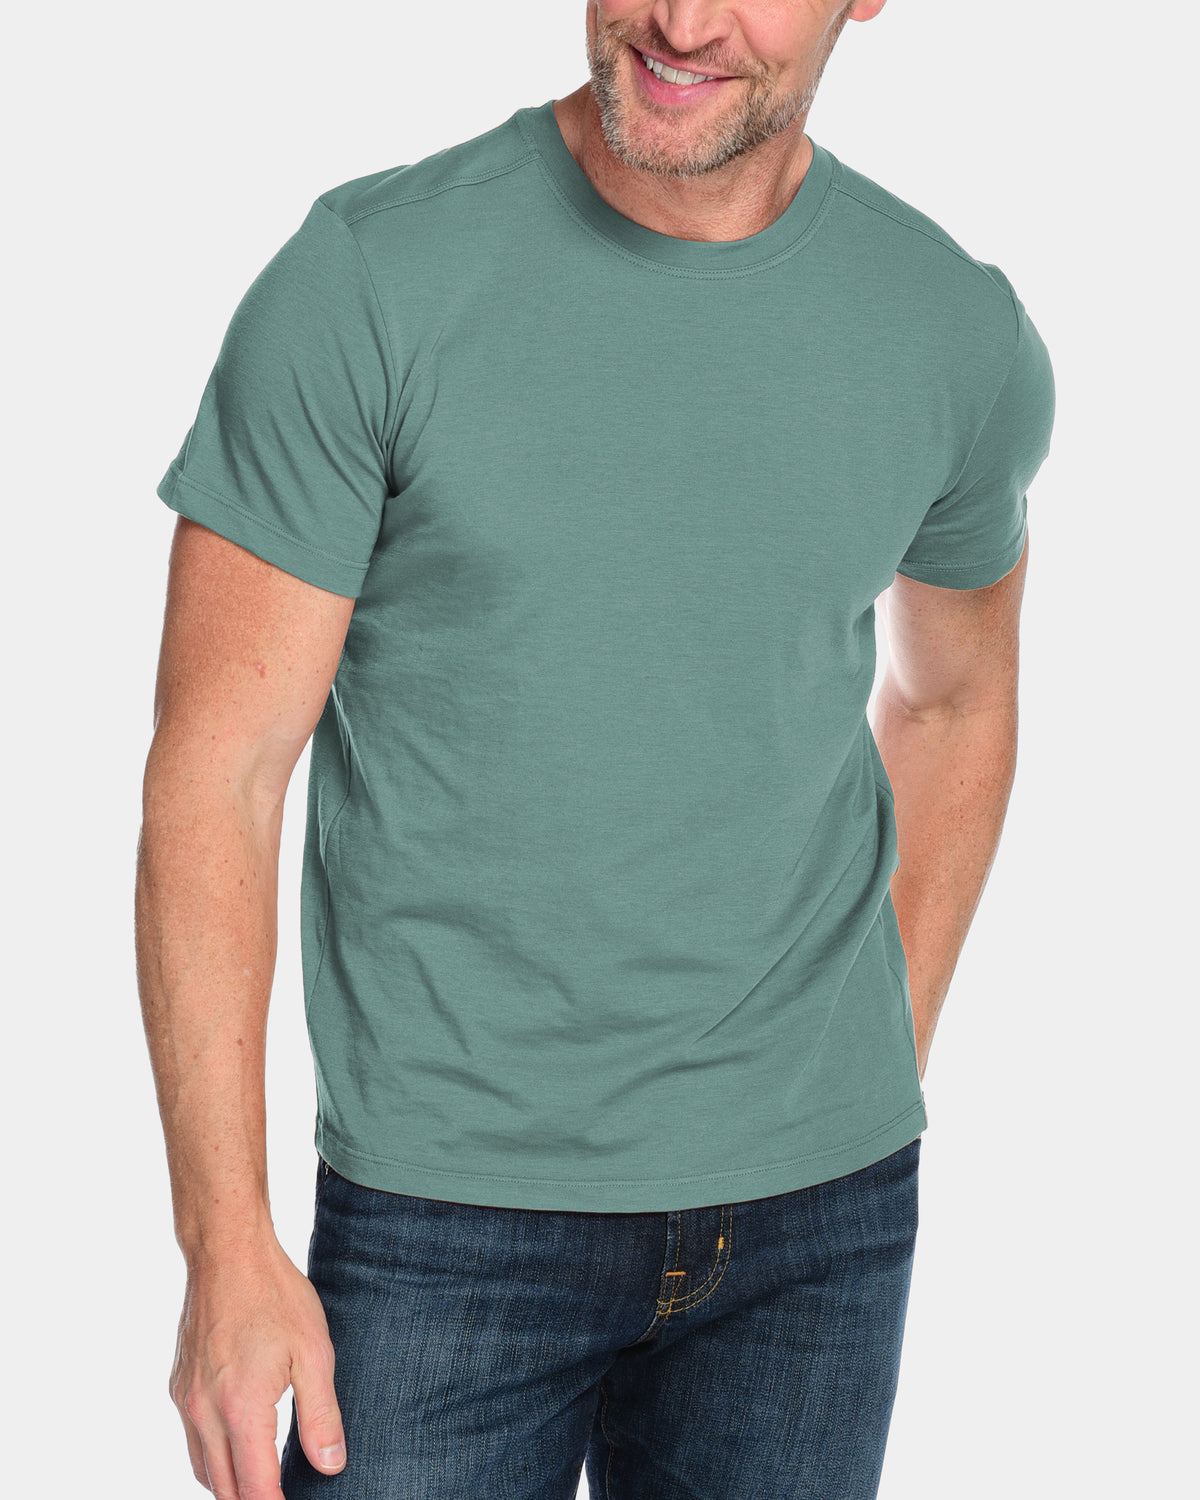 Men's Everyday Cashmere Short Sleeve Crew